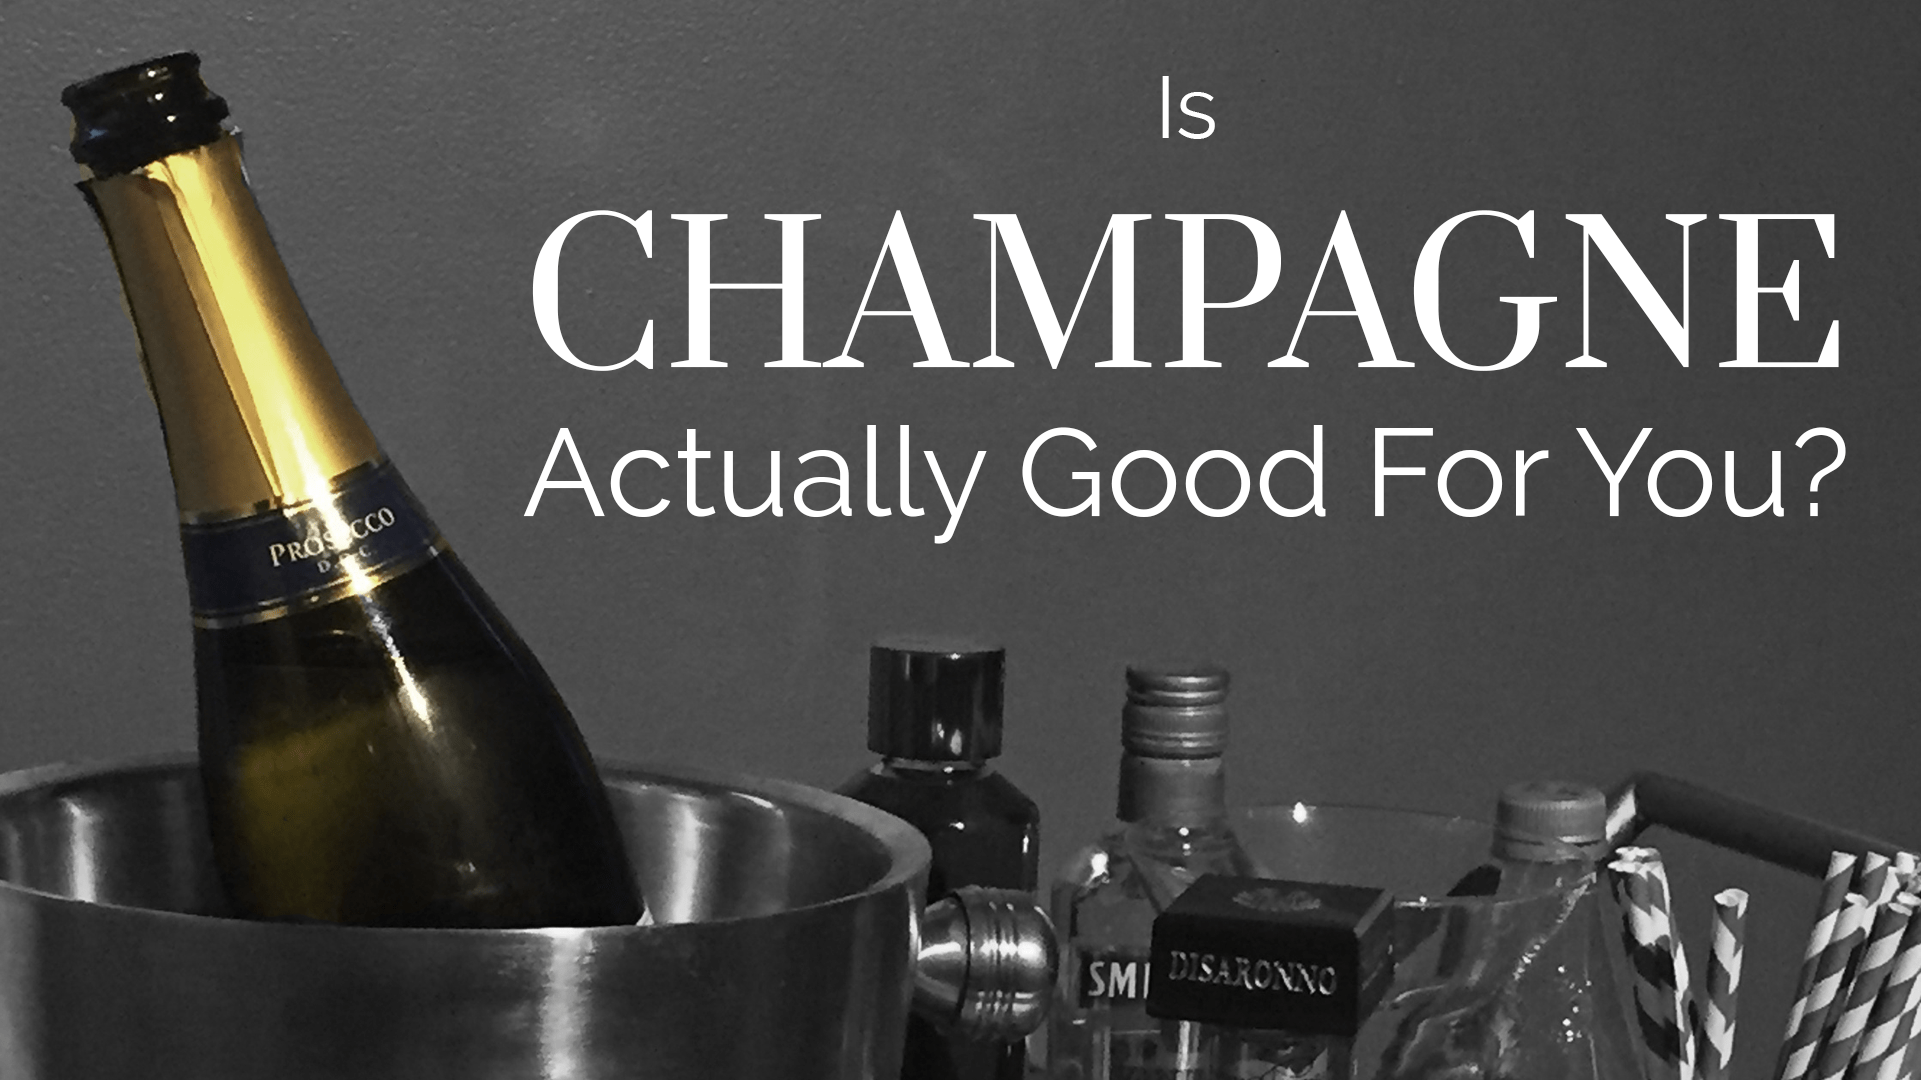 Is Champagne Actually Good For You?